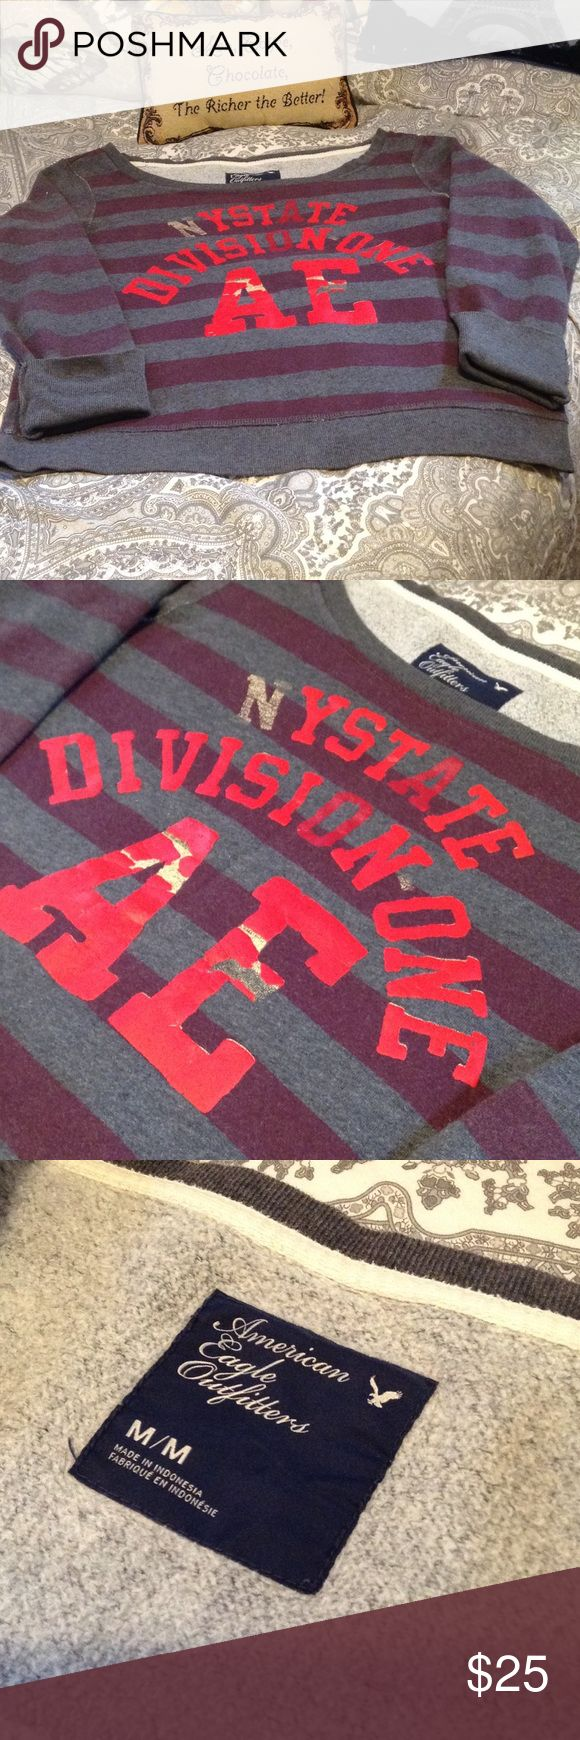 🆕 Gray Striped NYSTATE Sweatshirt ❤️🗽🇺🇸 BRAND NEW! Gray and Burgundy Purple Striped Sweatshirt. NYSTATE DIVISION ONE AE Graphic in Bright Red. Vintage Looking. American Eagle Brand Size Medium American Eagle Outfitters Tops